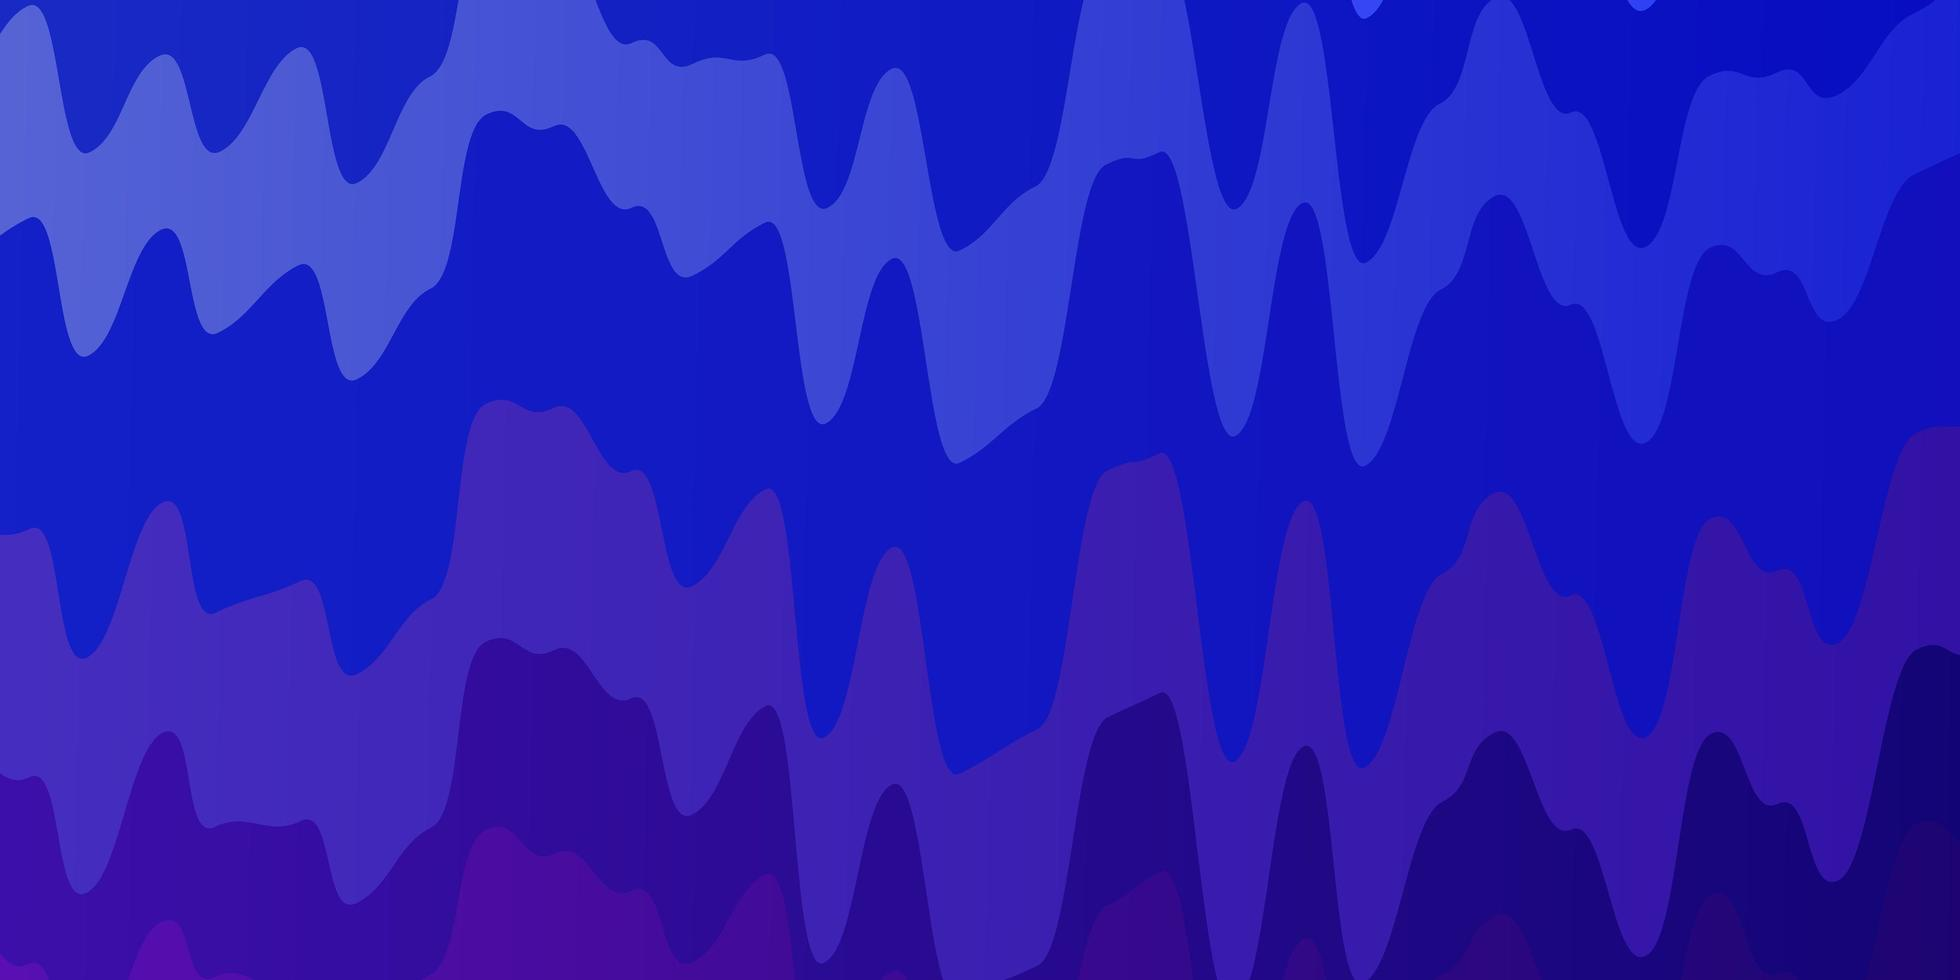 Blue, purple background with wavy lines. vector